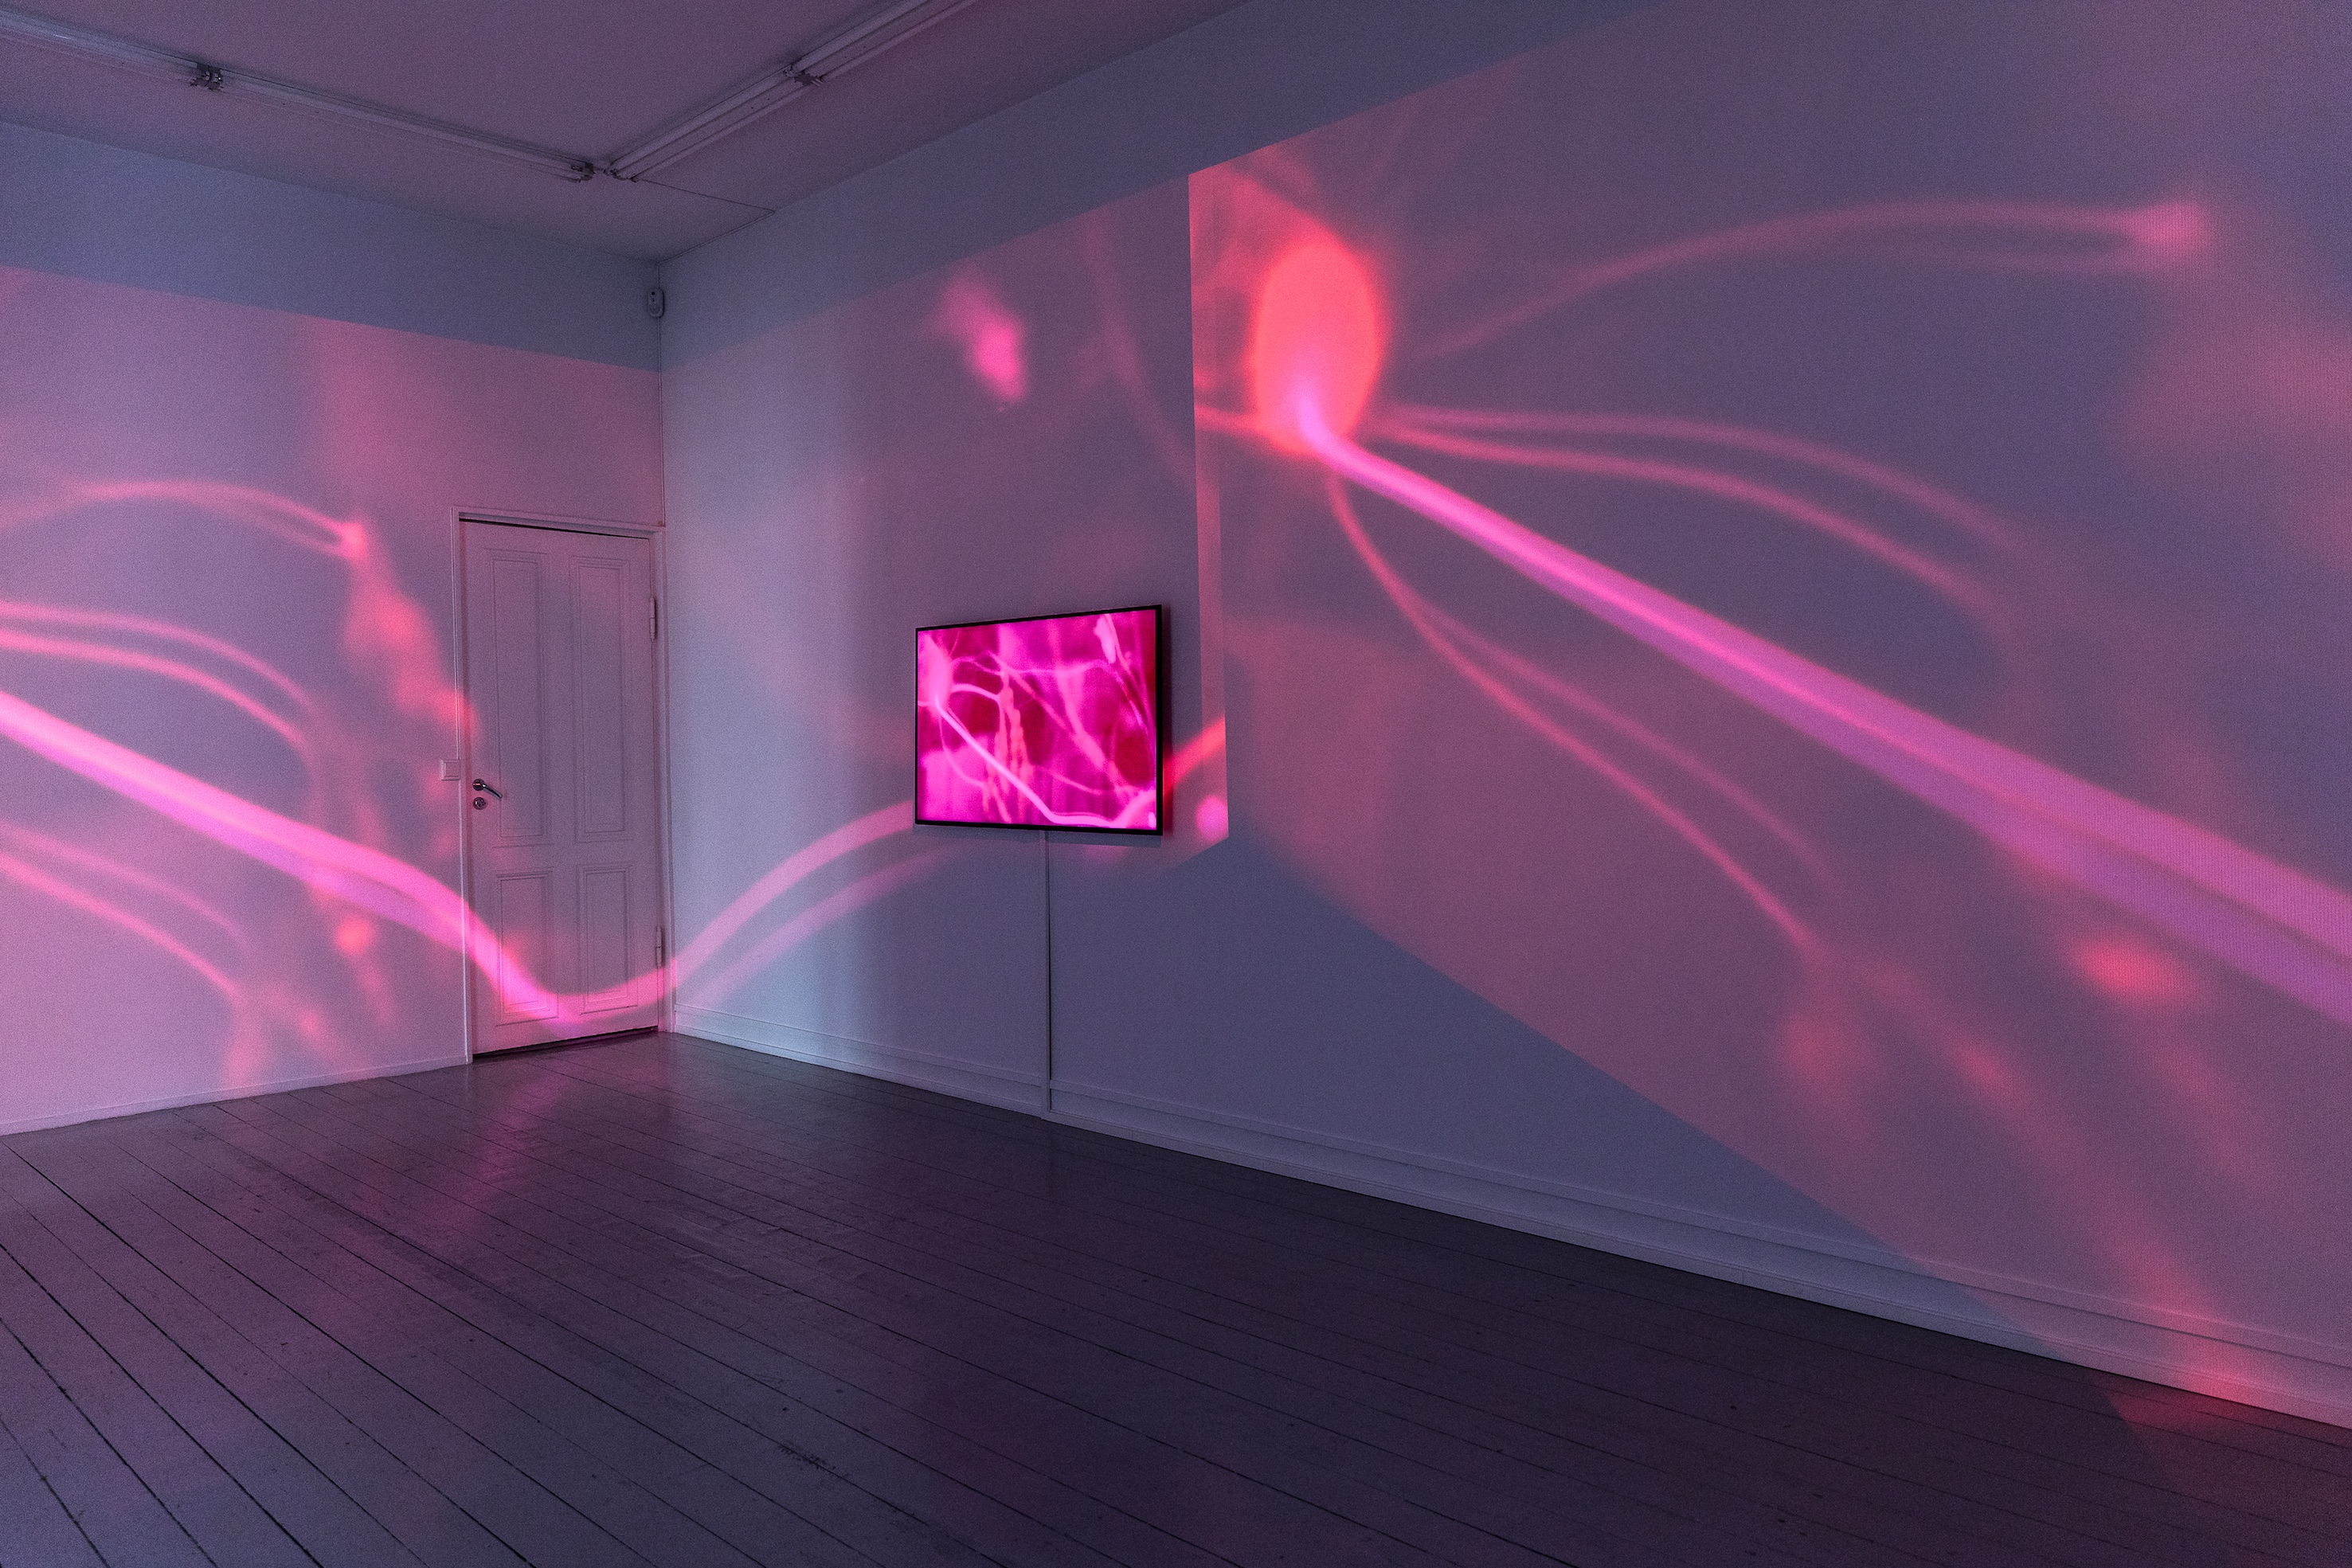 Pulses, 2018, Video, 17 minutes and 58 second loop, color and audio, Kirlian photography and sound Valdemar Asp, Tesla sphere and sound Christine Ödlund, Edition of 5